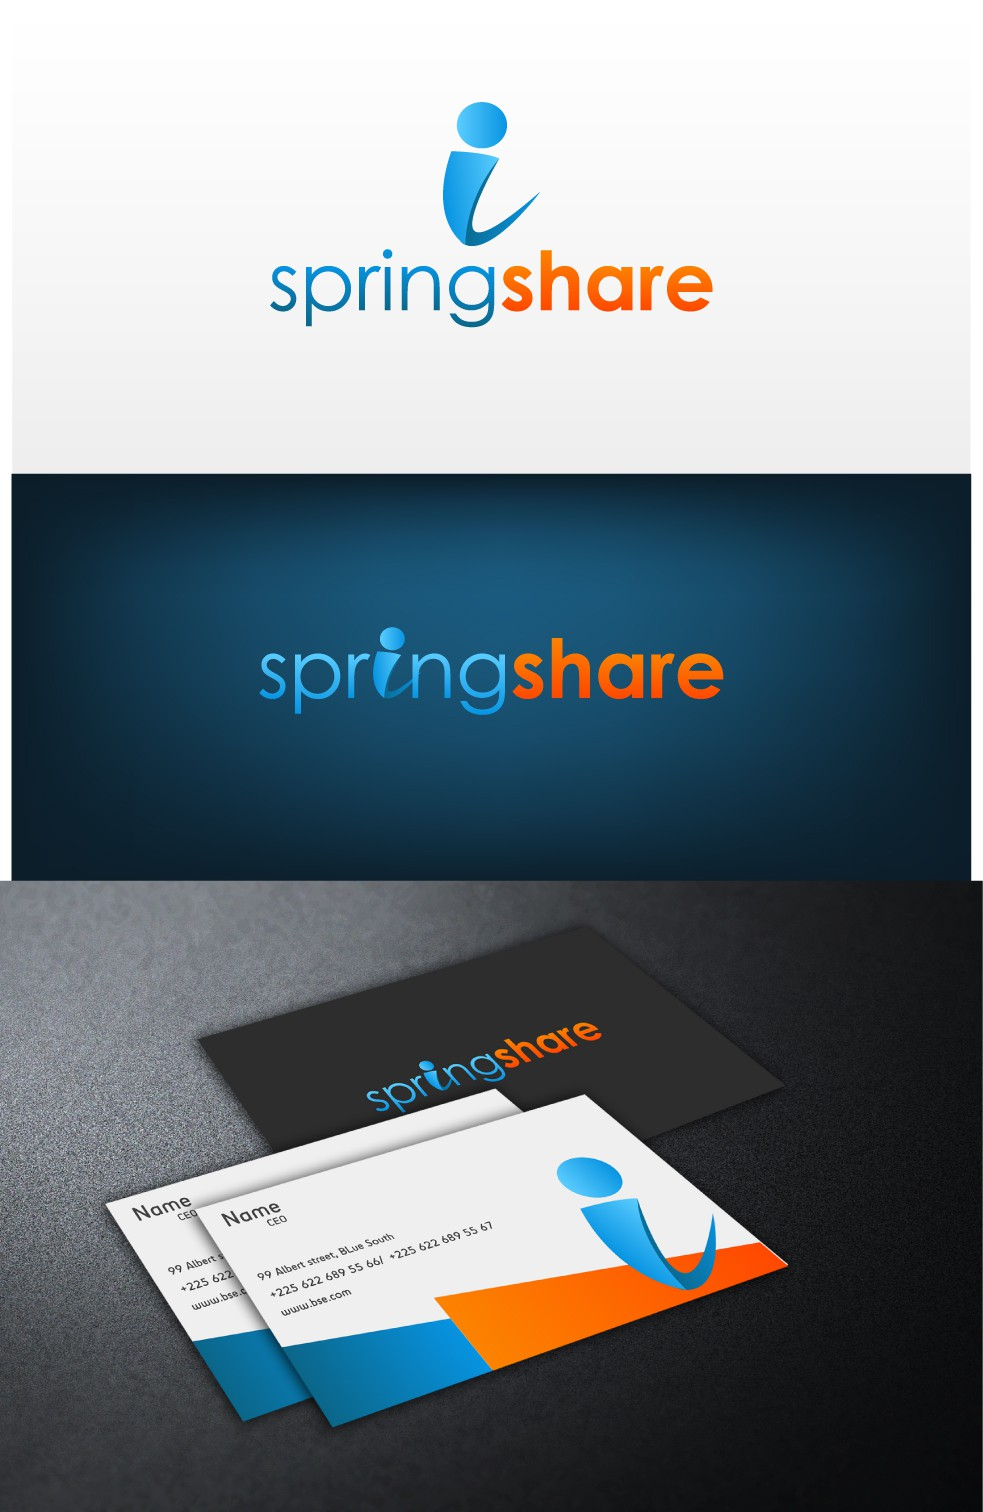 Springshare needs a new logo and business card!